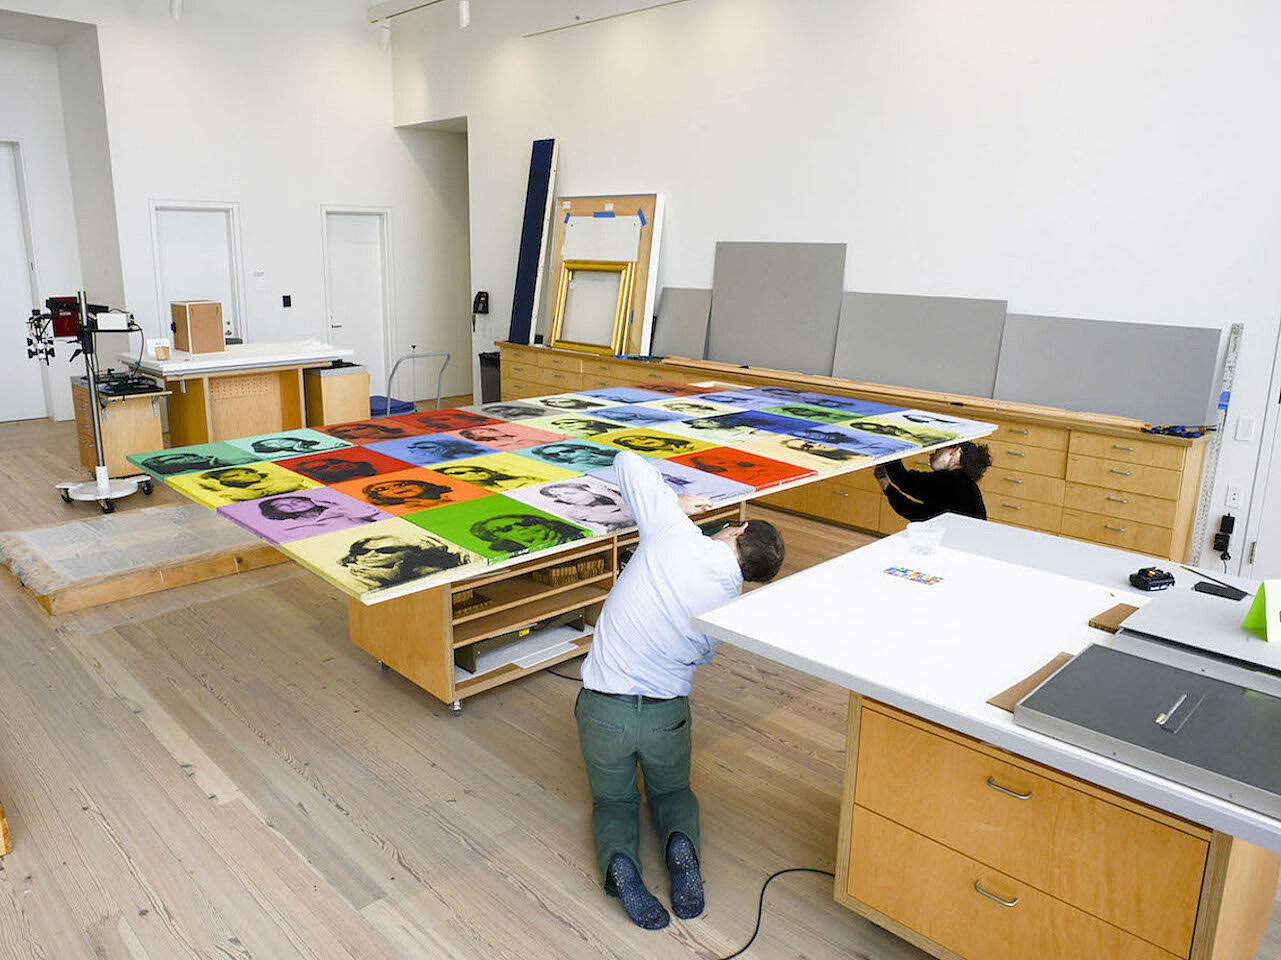 Conservationists working on an artwork by Andy Warhol.